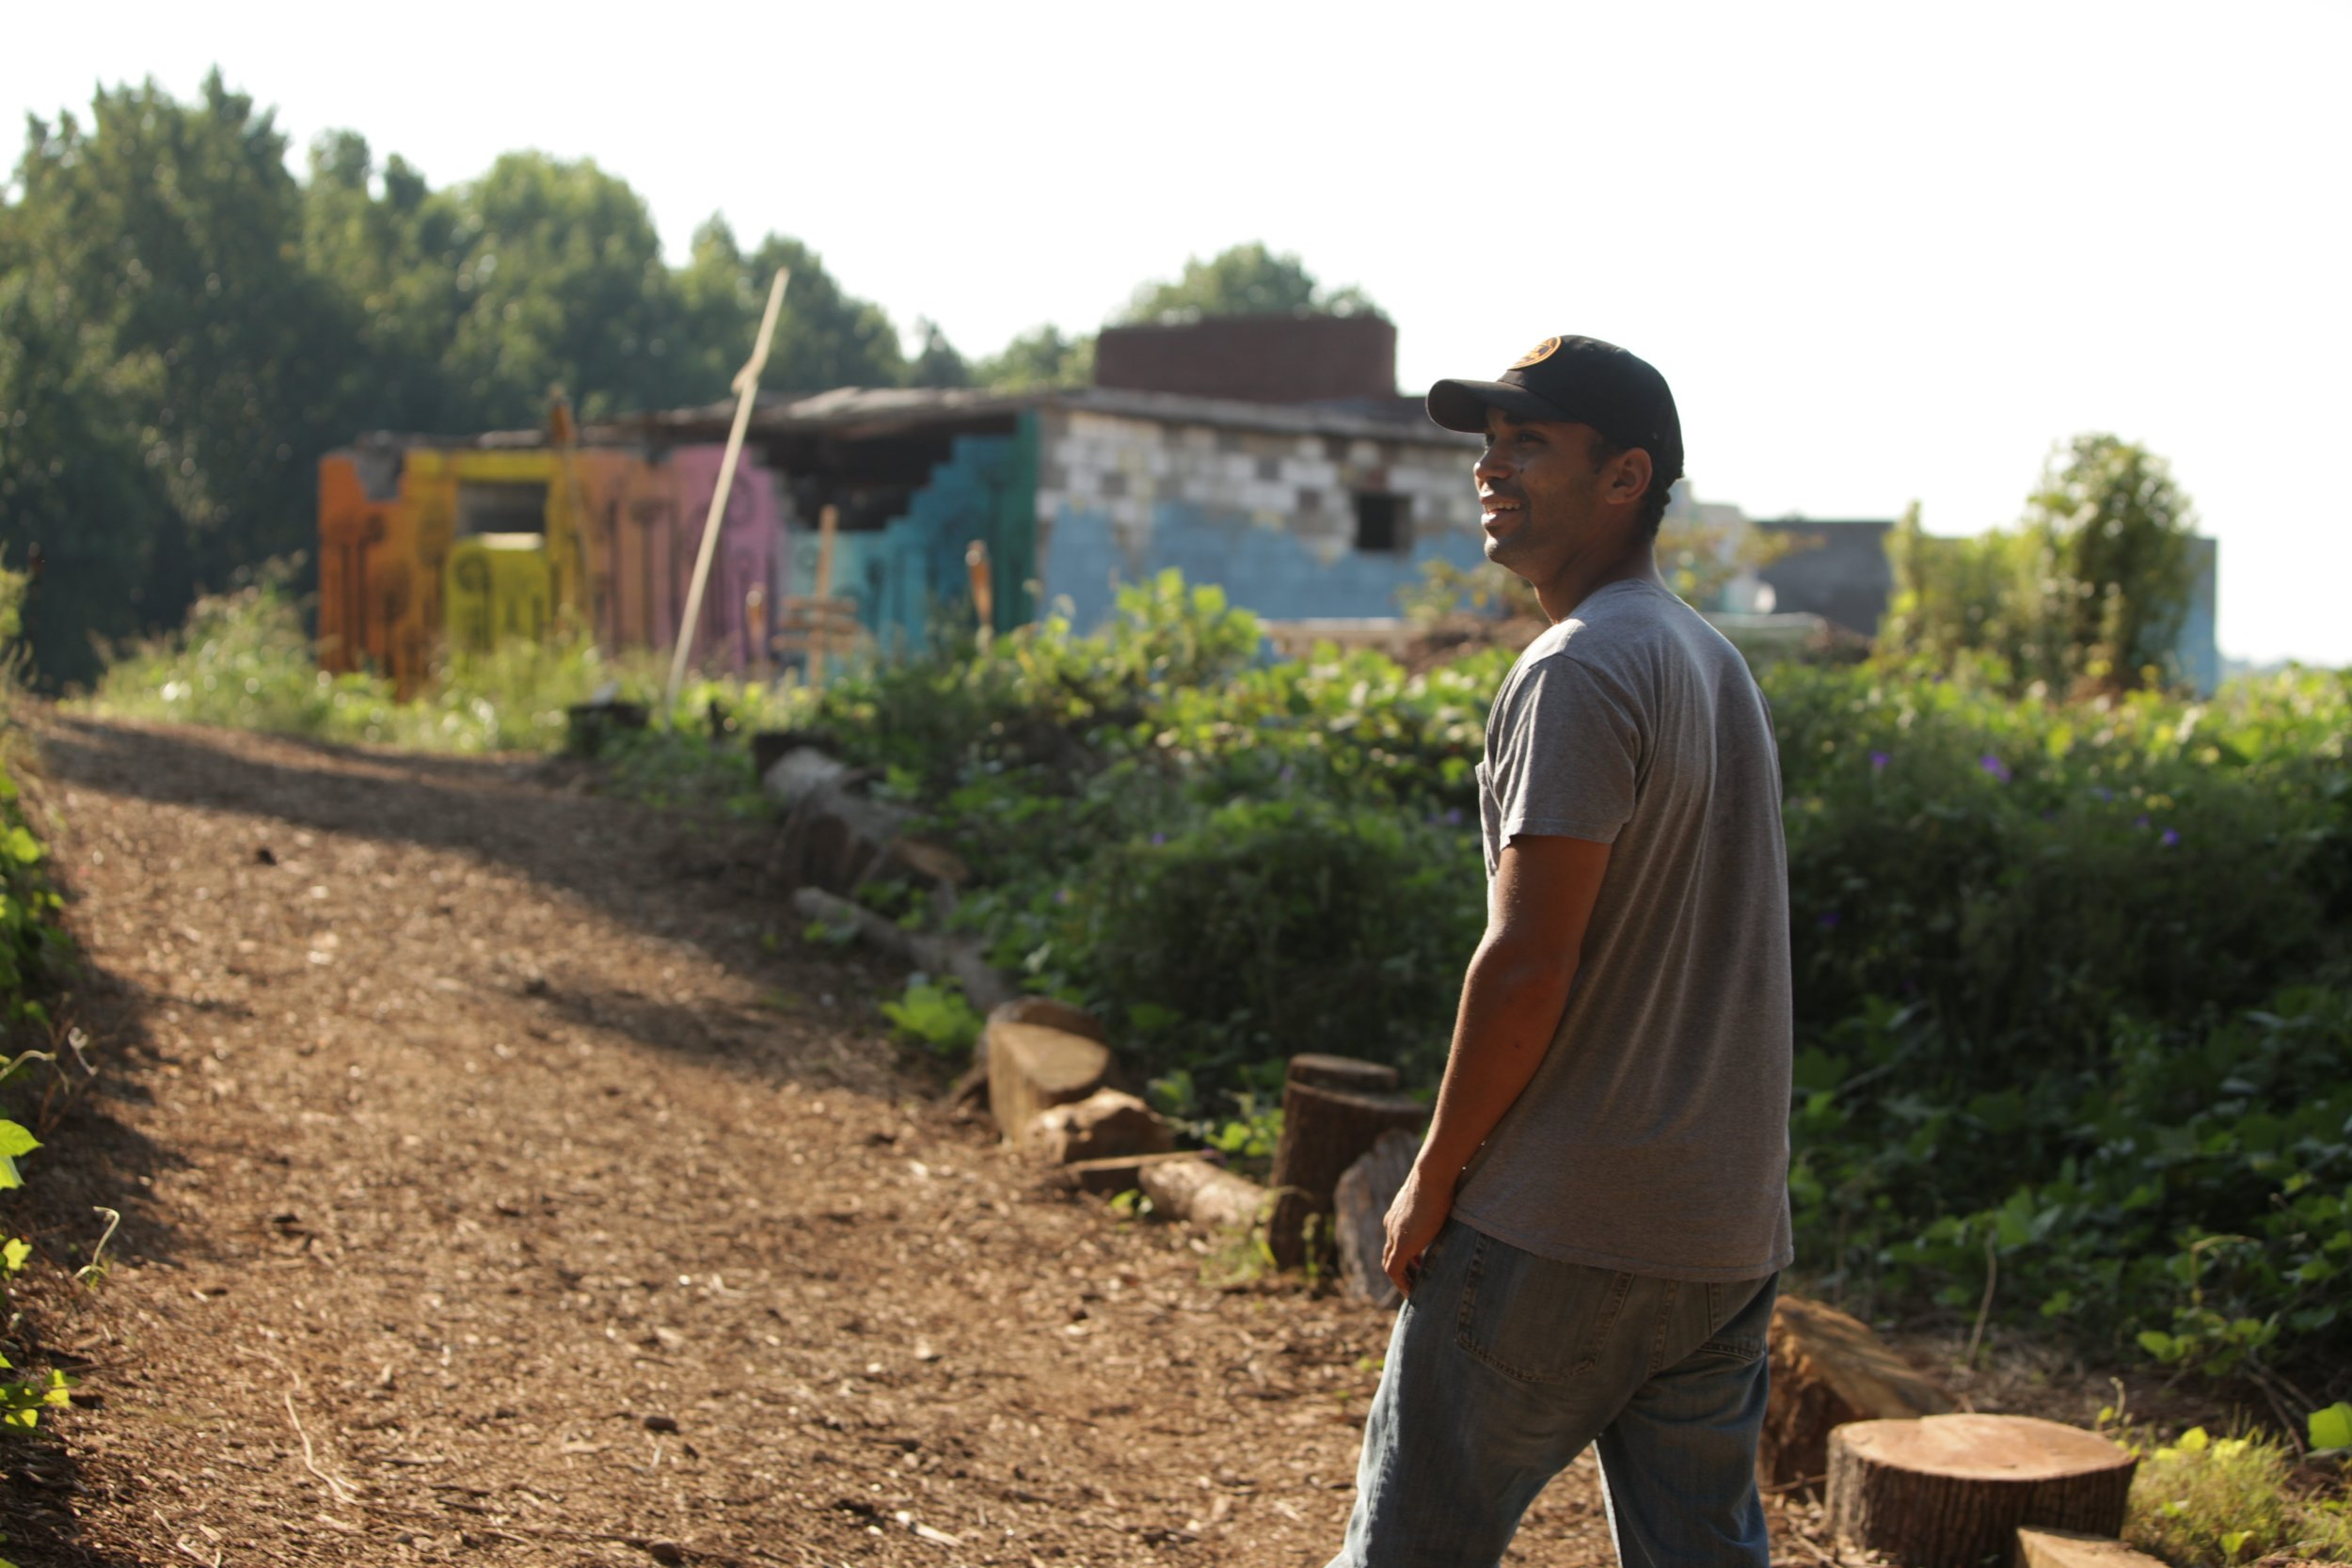 Nuri Icgoren, owner and urban farmer at Urban Sprout Farms, is pictured walking through the site of his Lakewood Heights farm.